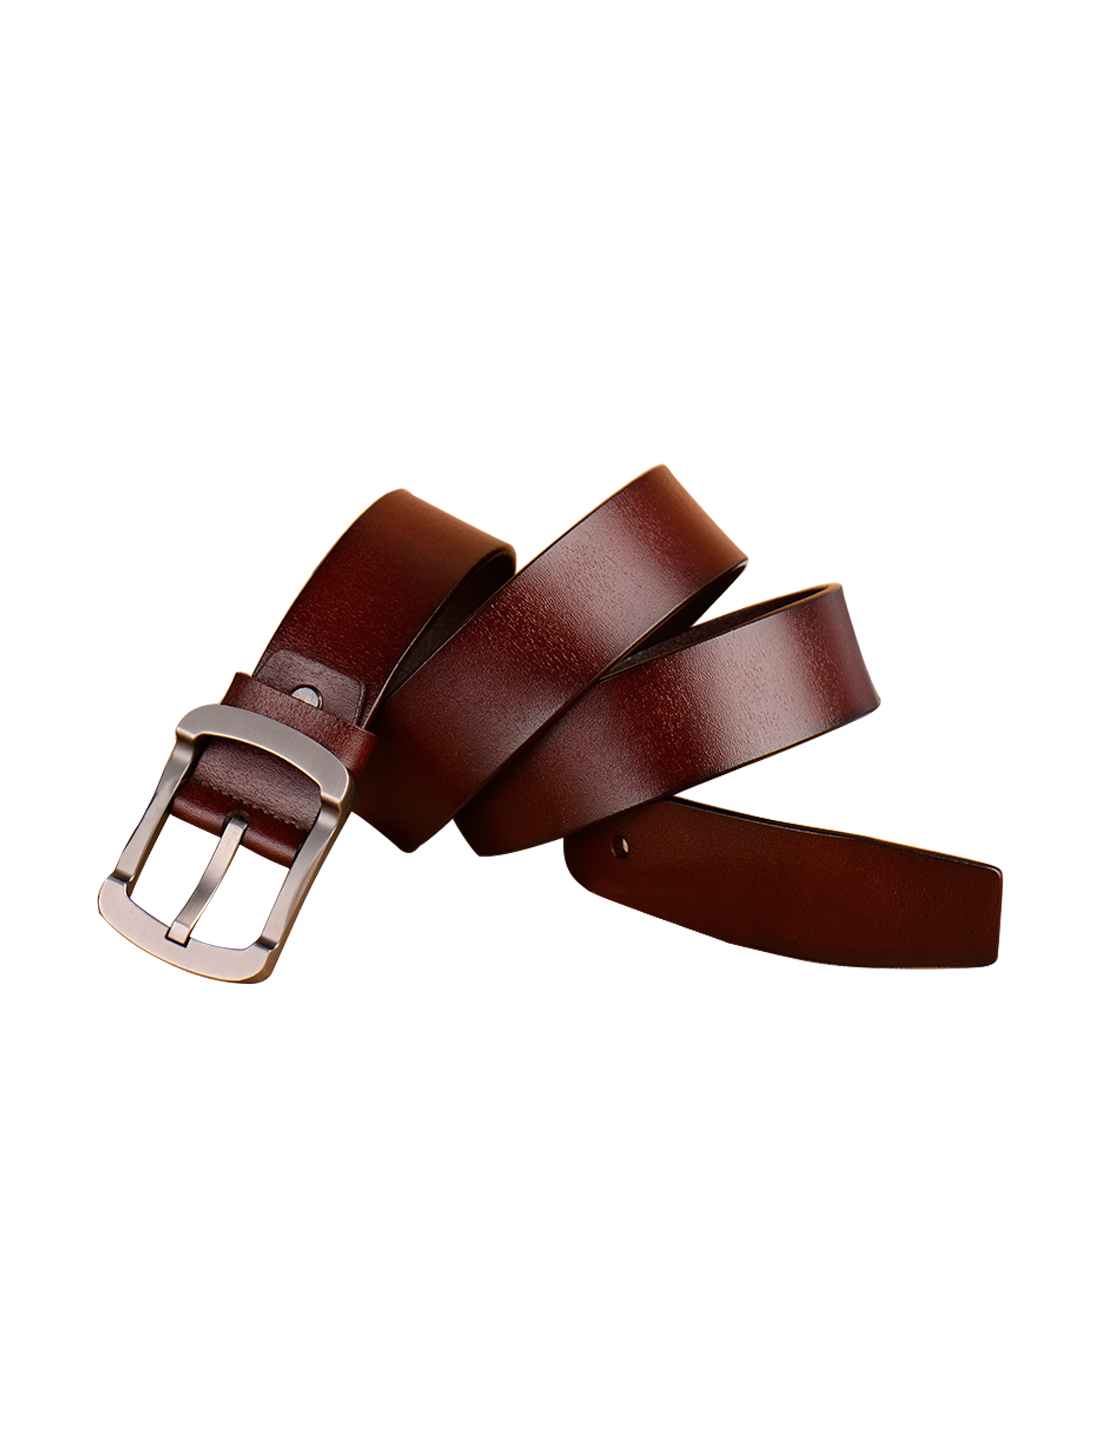 Men Youth Solid Single Pin Buckle Dress Leather Belt 38mm Width 1 1/2 Brown 115cm